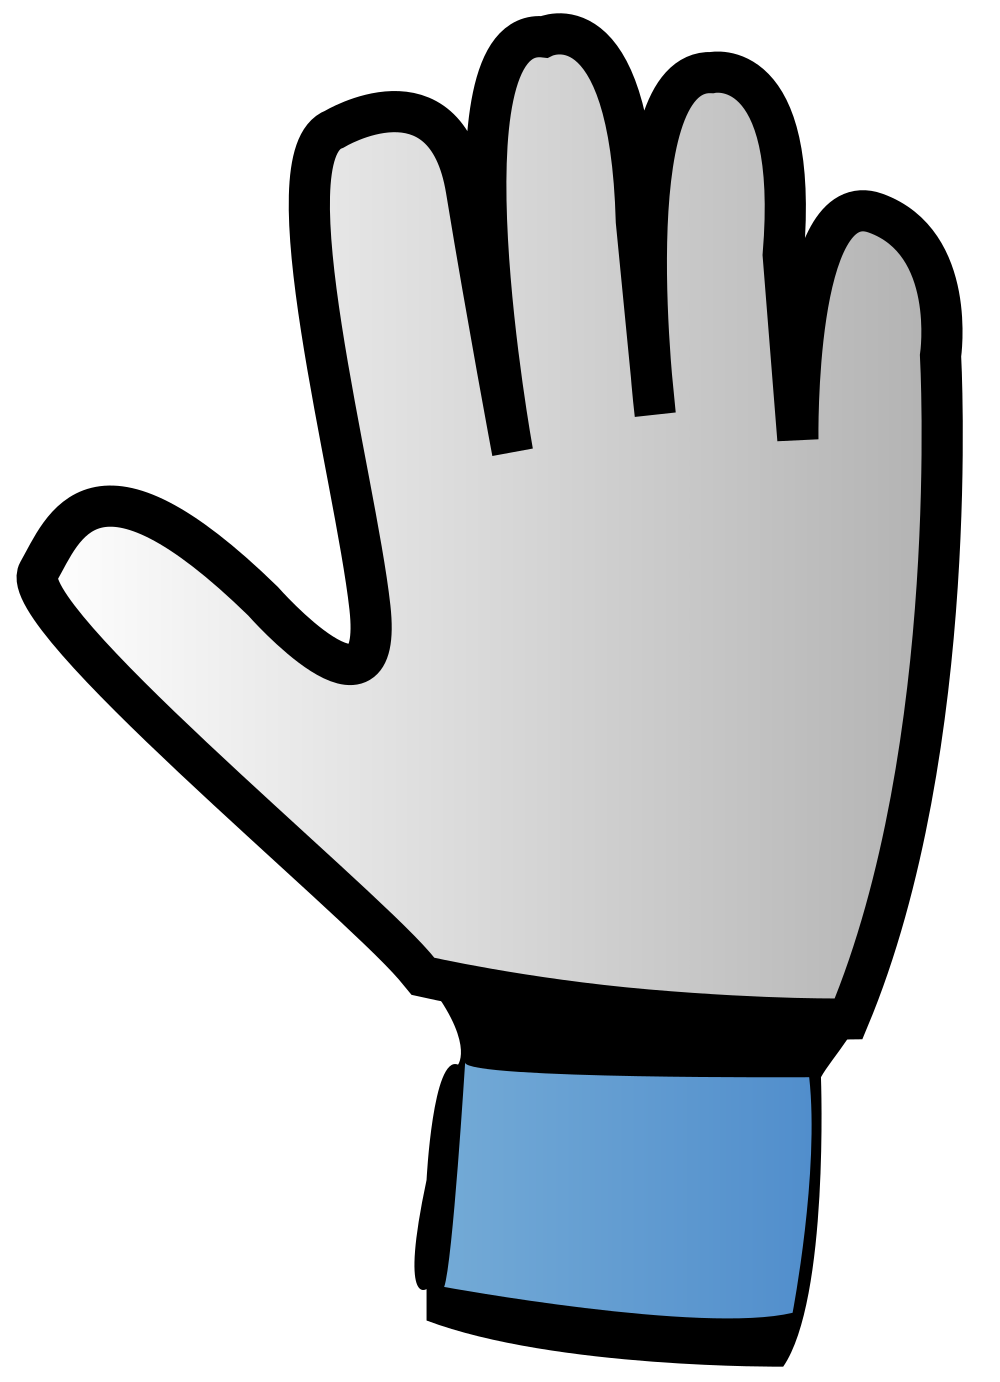 Glove clipart ppe equipment. File goalkeeper icon svg